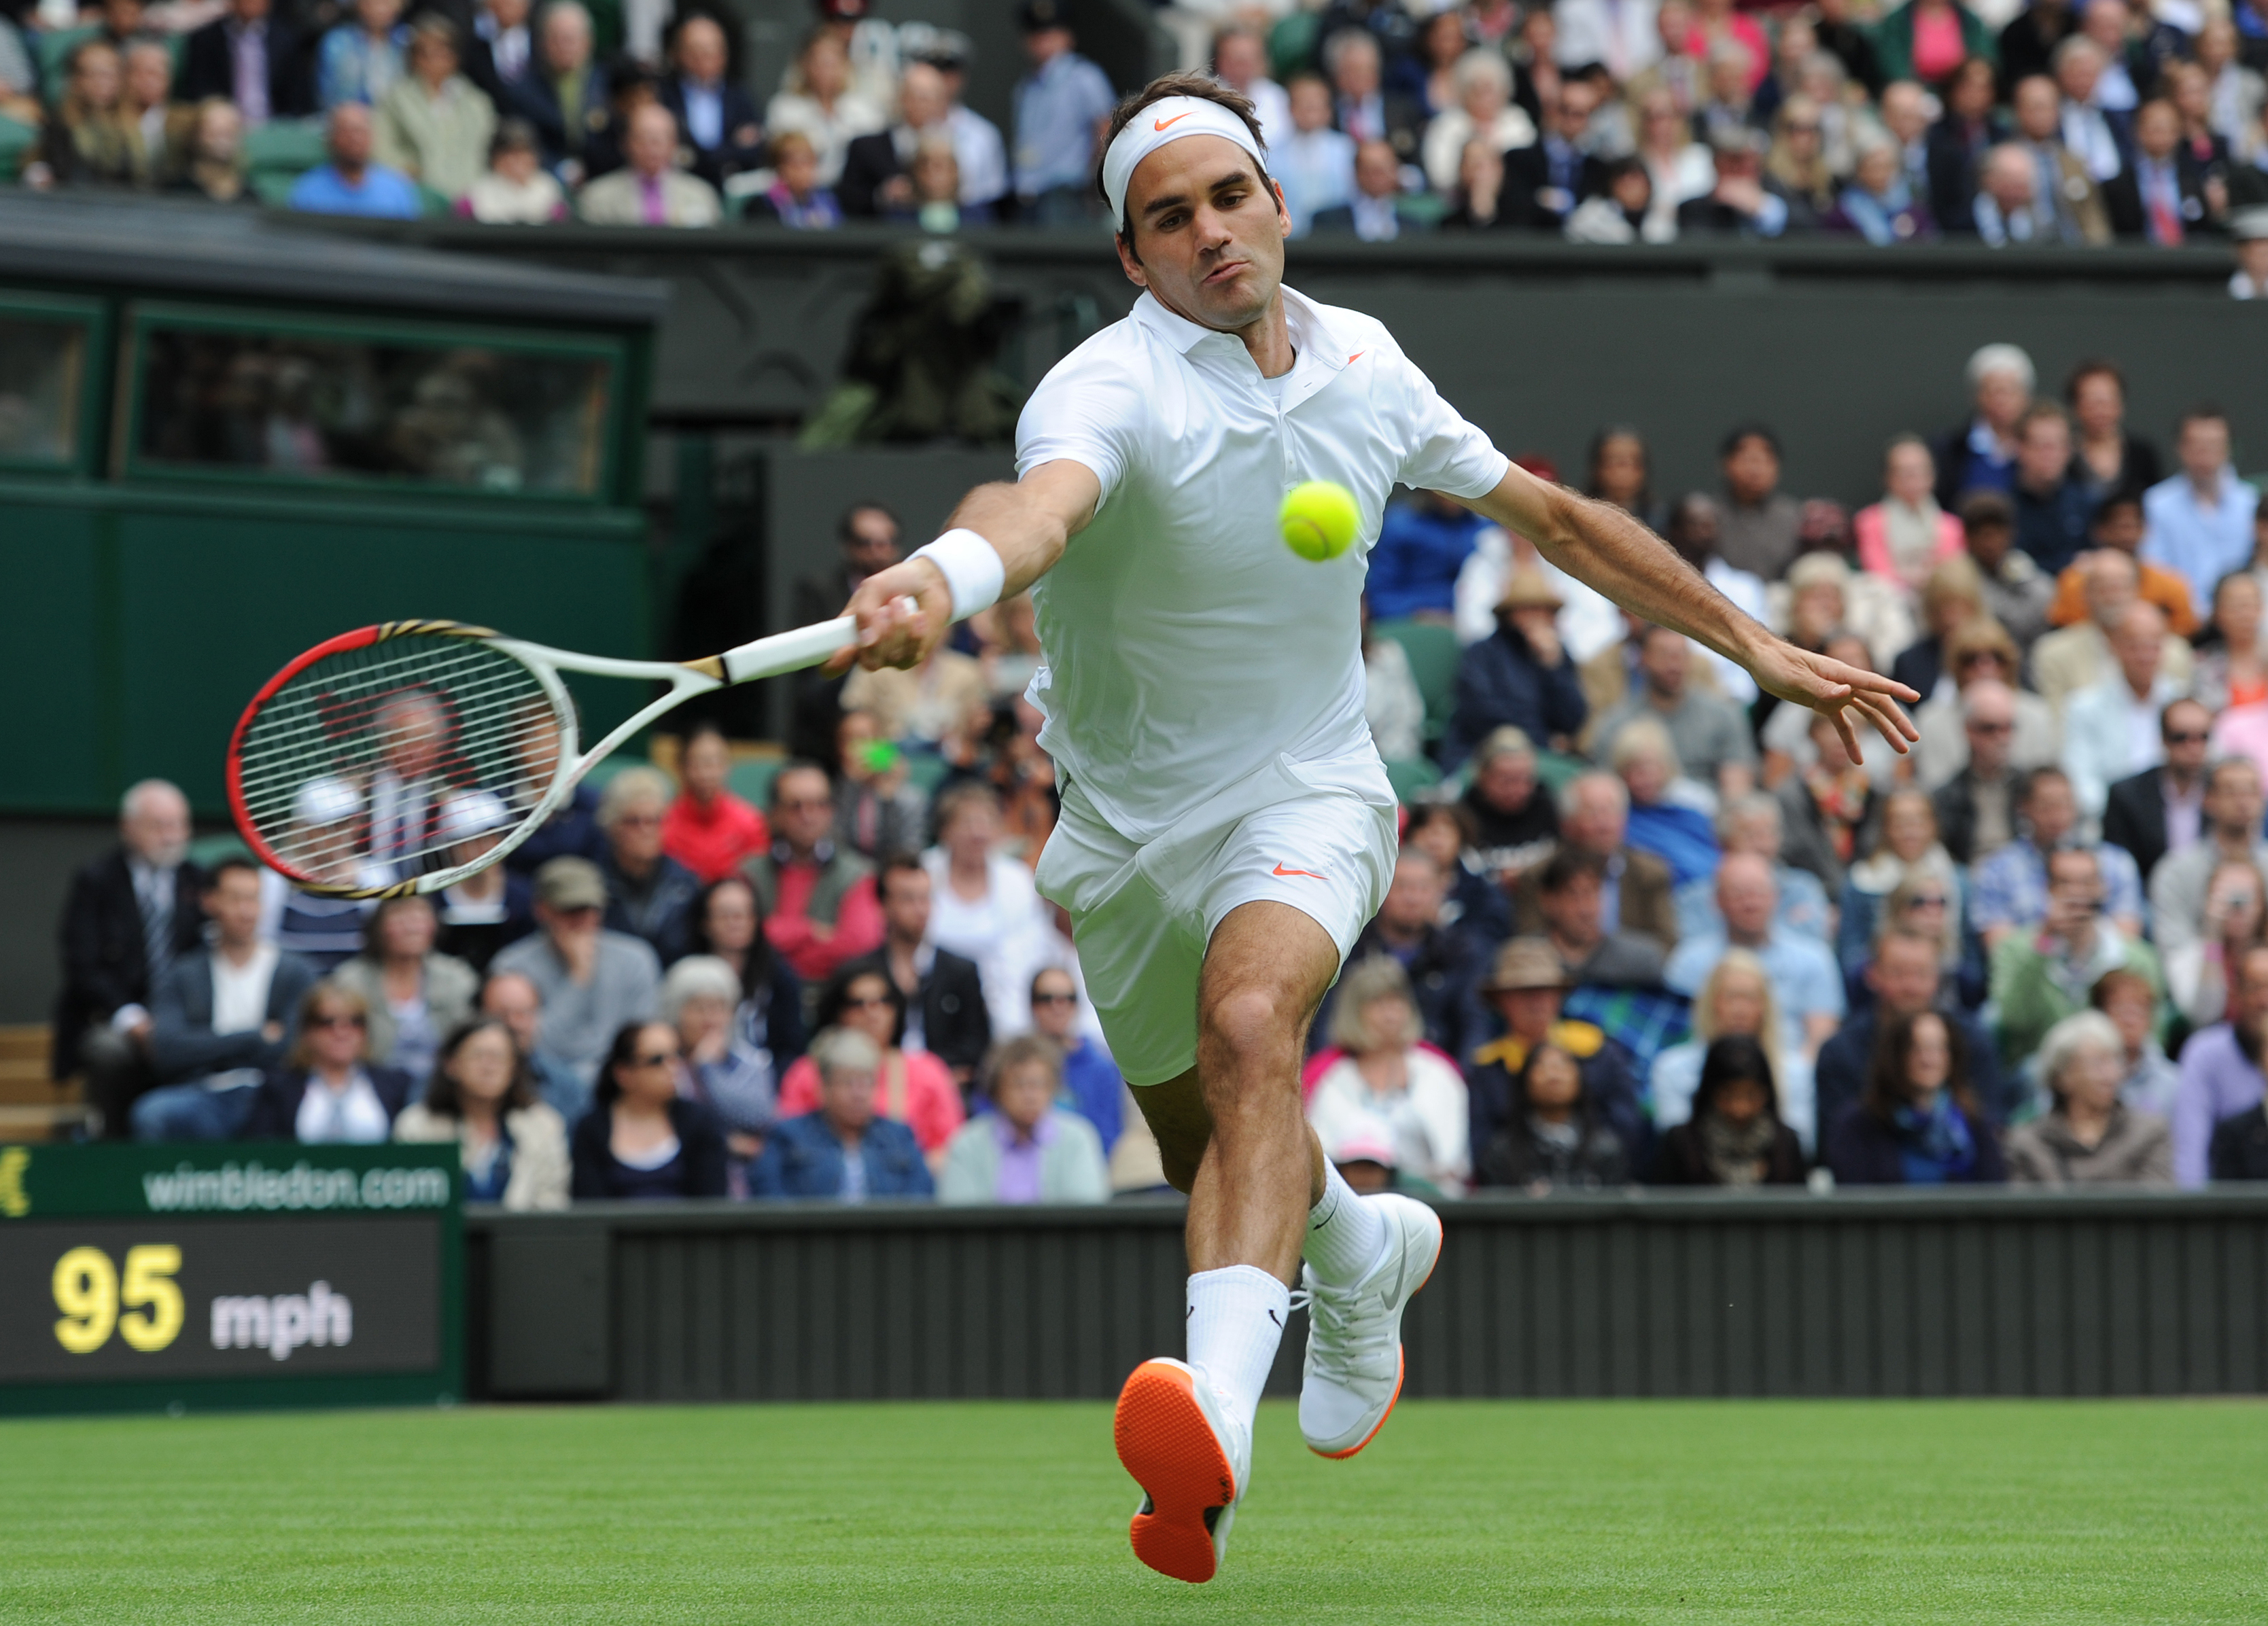 Roger Federer of Switzerland during his first round match against Victor Hanescu of Romania of on Day One of the 2013 Wimbledon Tennis Championships at the All England Lawn Tennis and Croquet Club in London, United Kingdom.